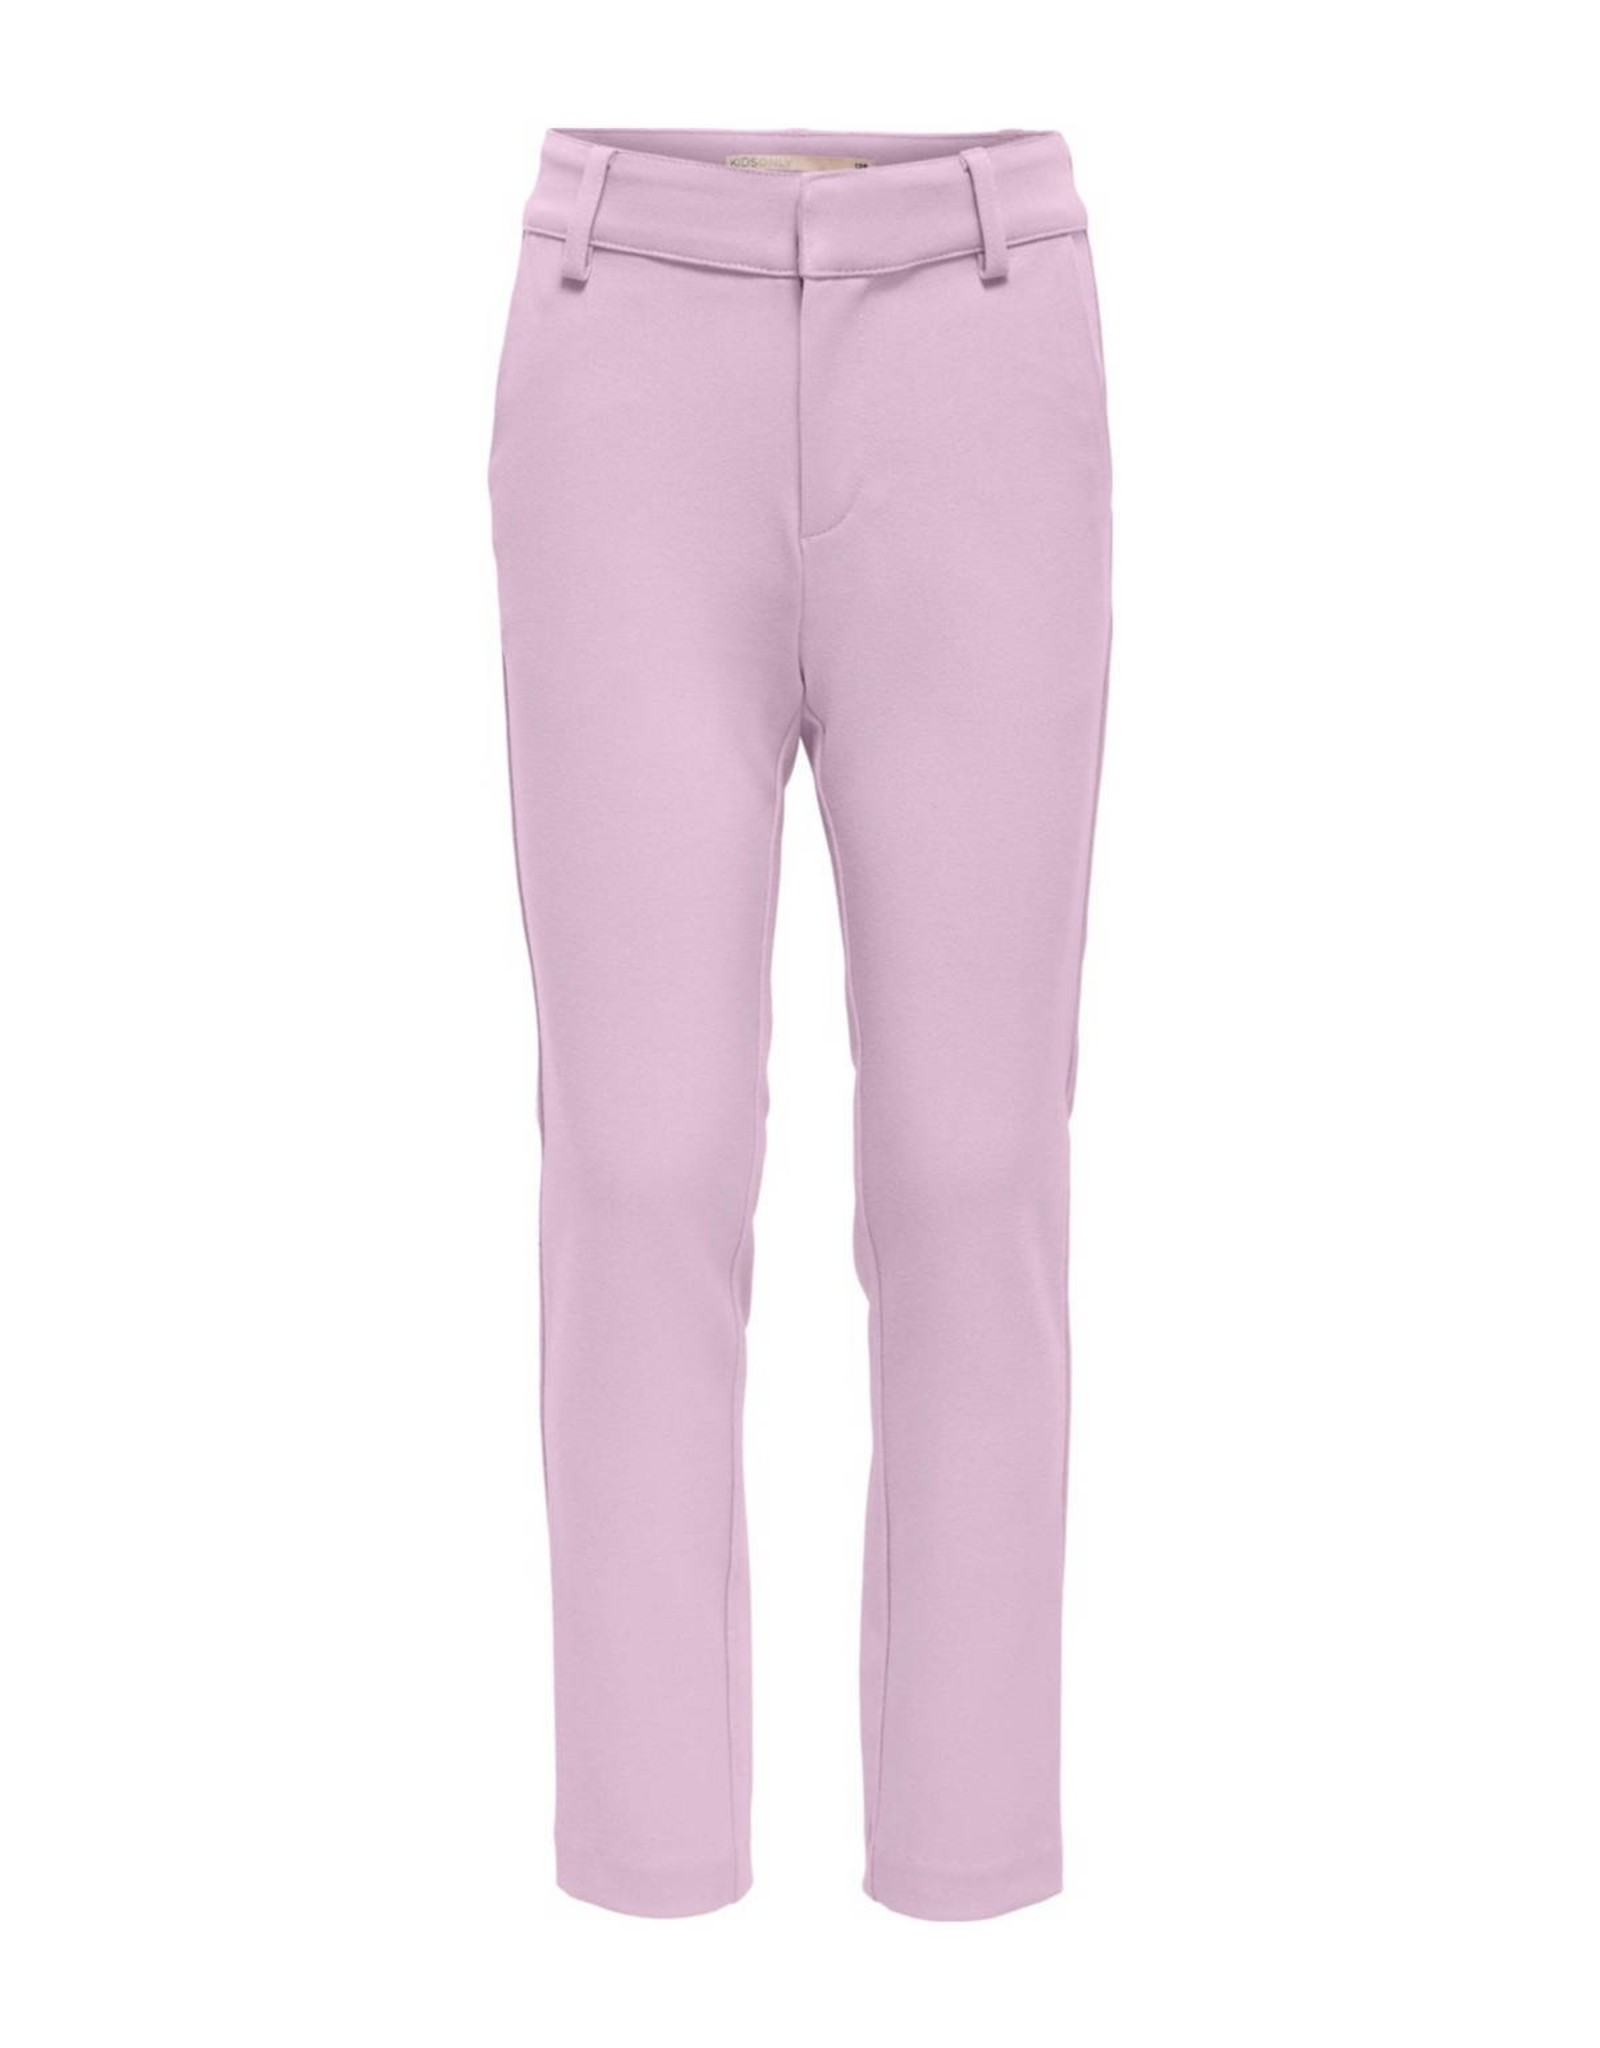 Kids Only Konemily Velma Pant Orchid Bloom